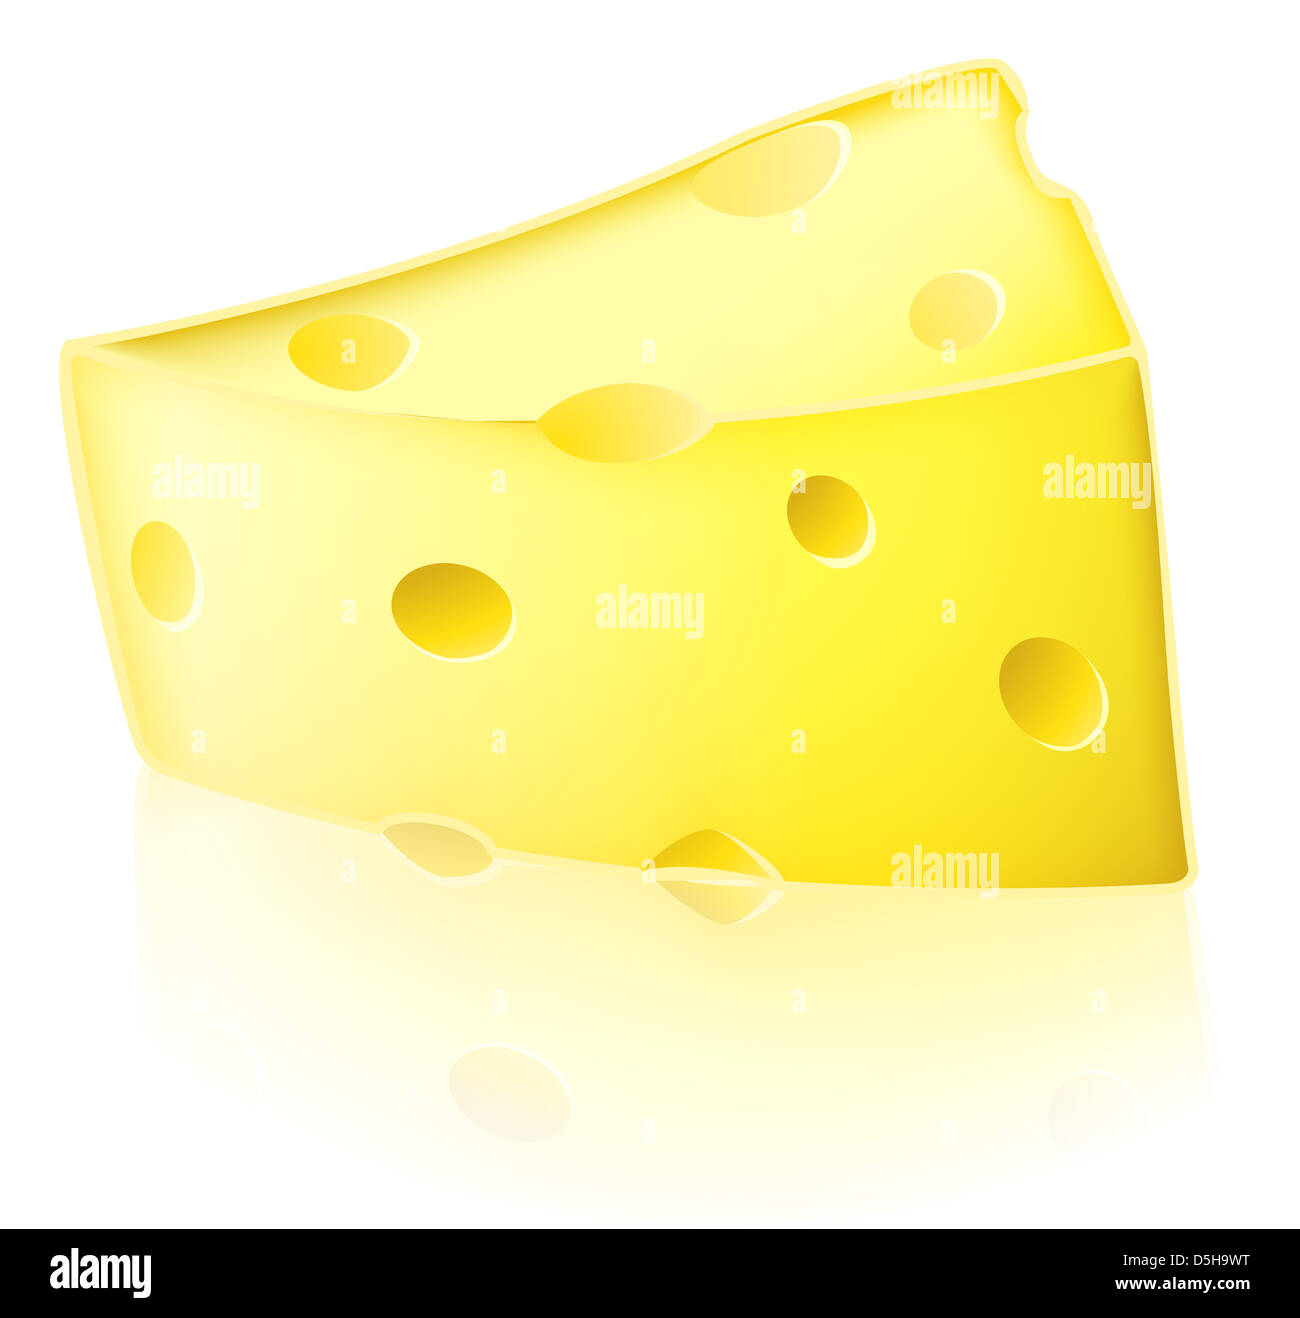 Illustration Of A Slice Of Cartoon Swiss Type Yellow Cheese With